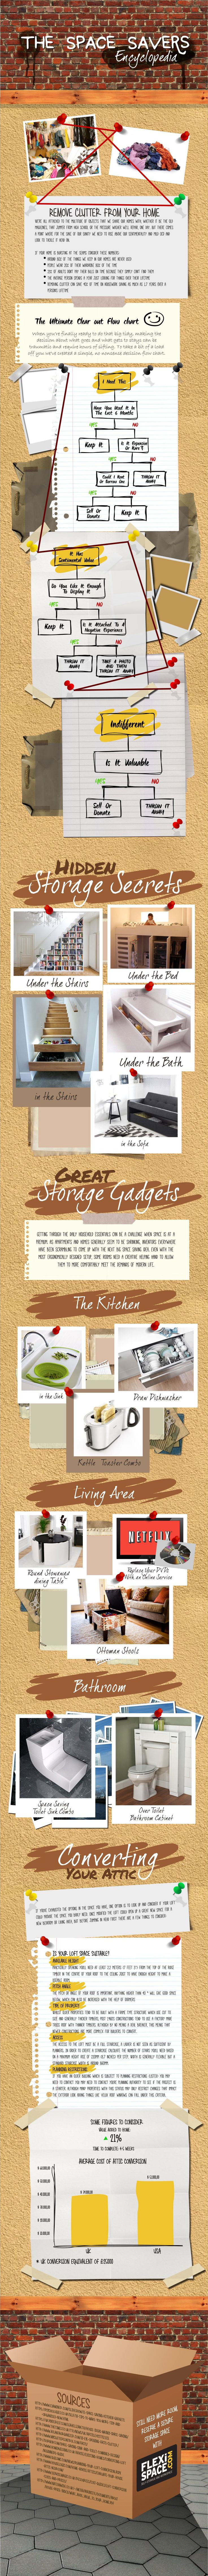 The 7 Principles of Decluttering Your Home #declutter #organization #organize #inforgraphic